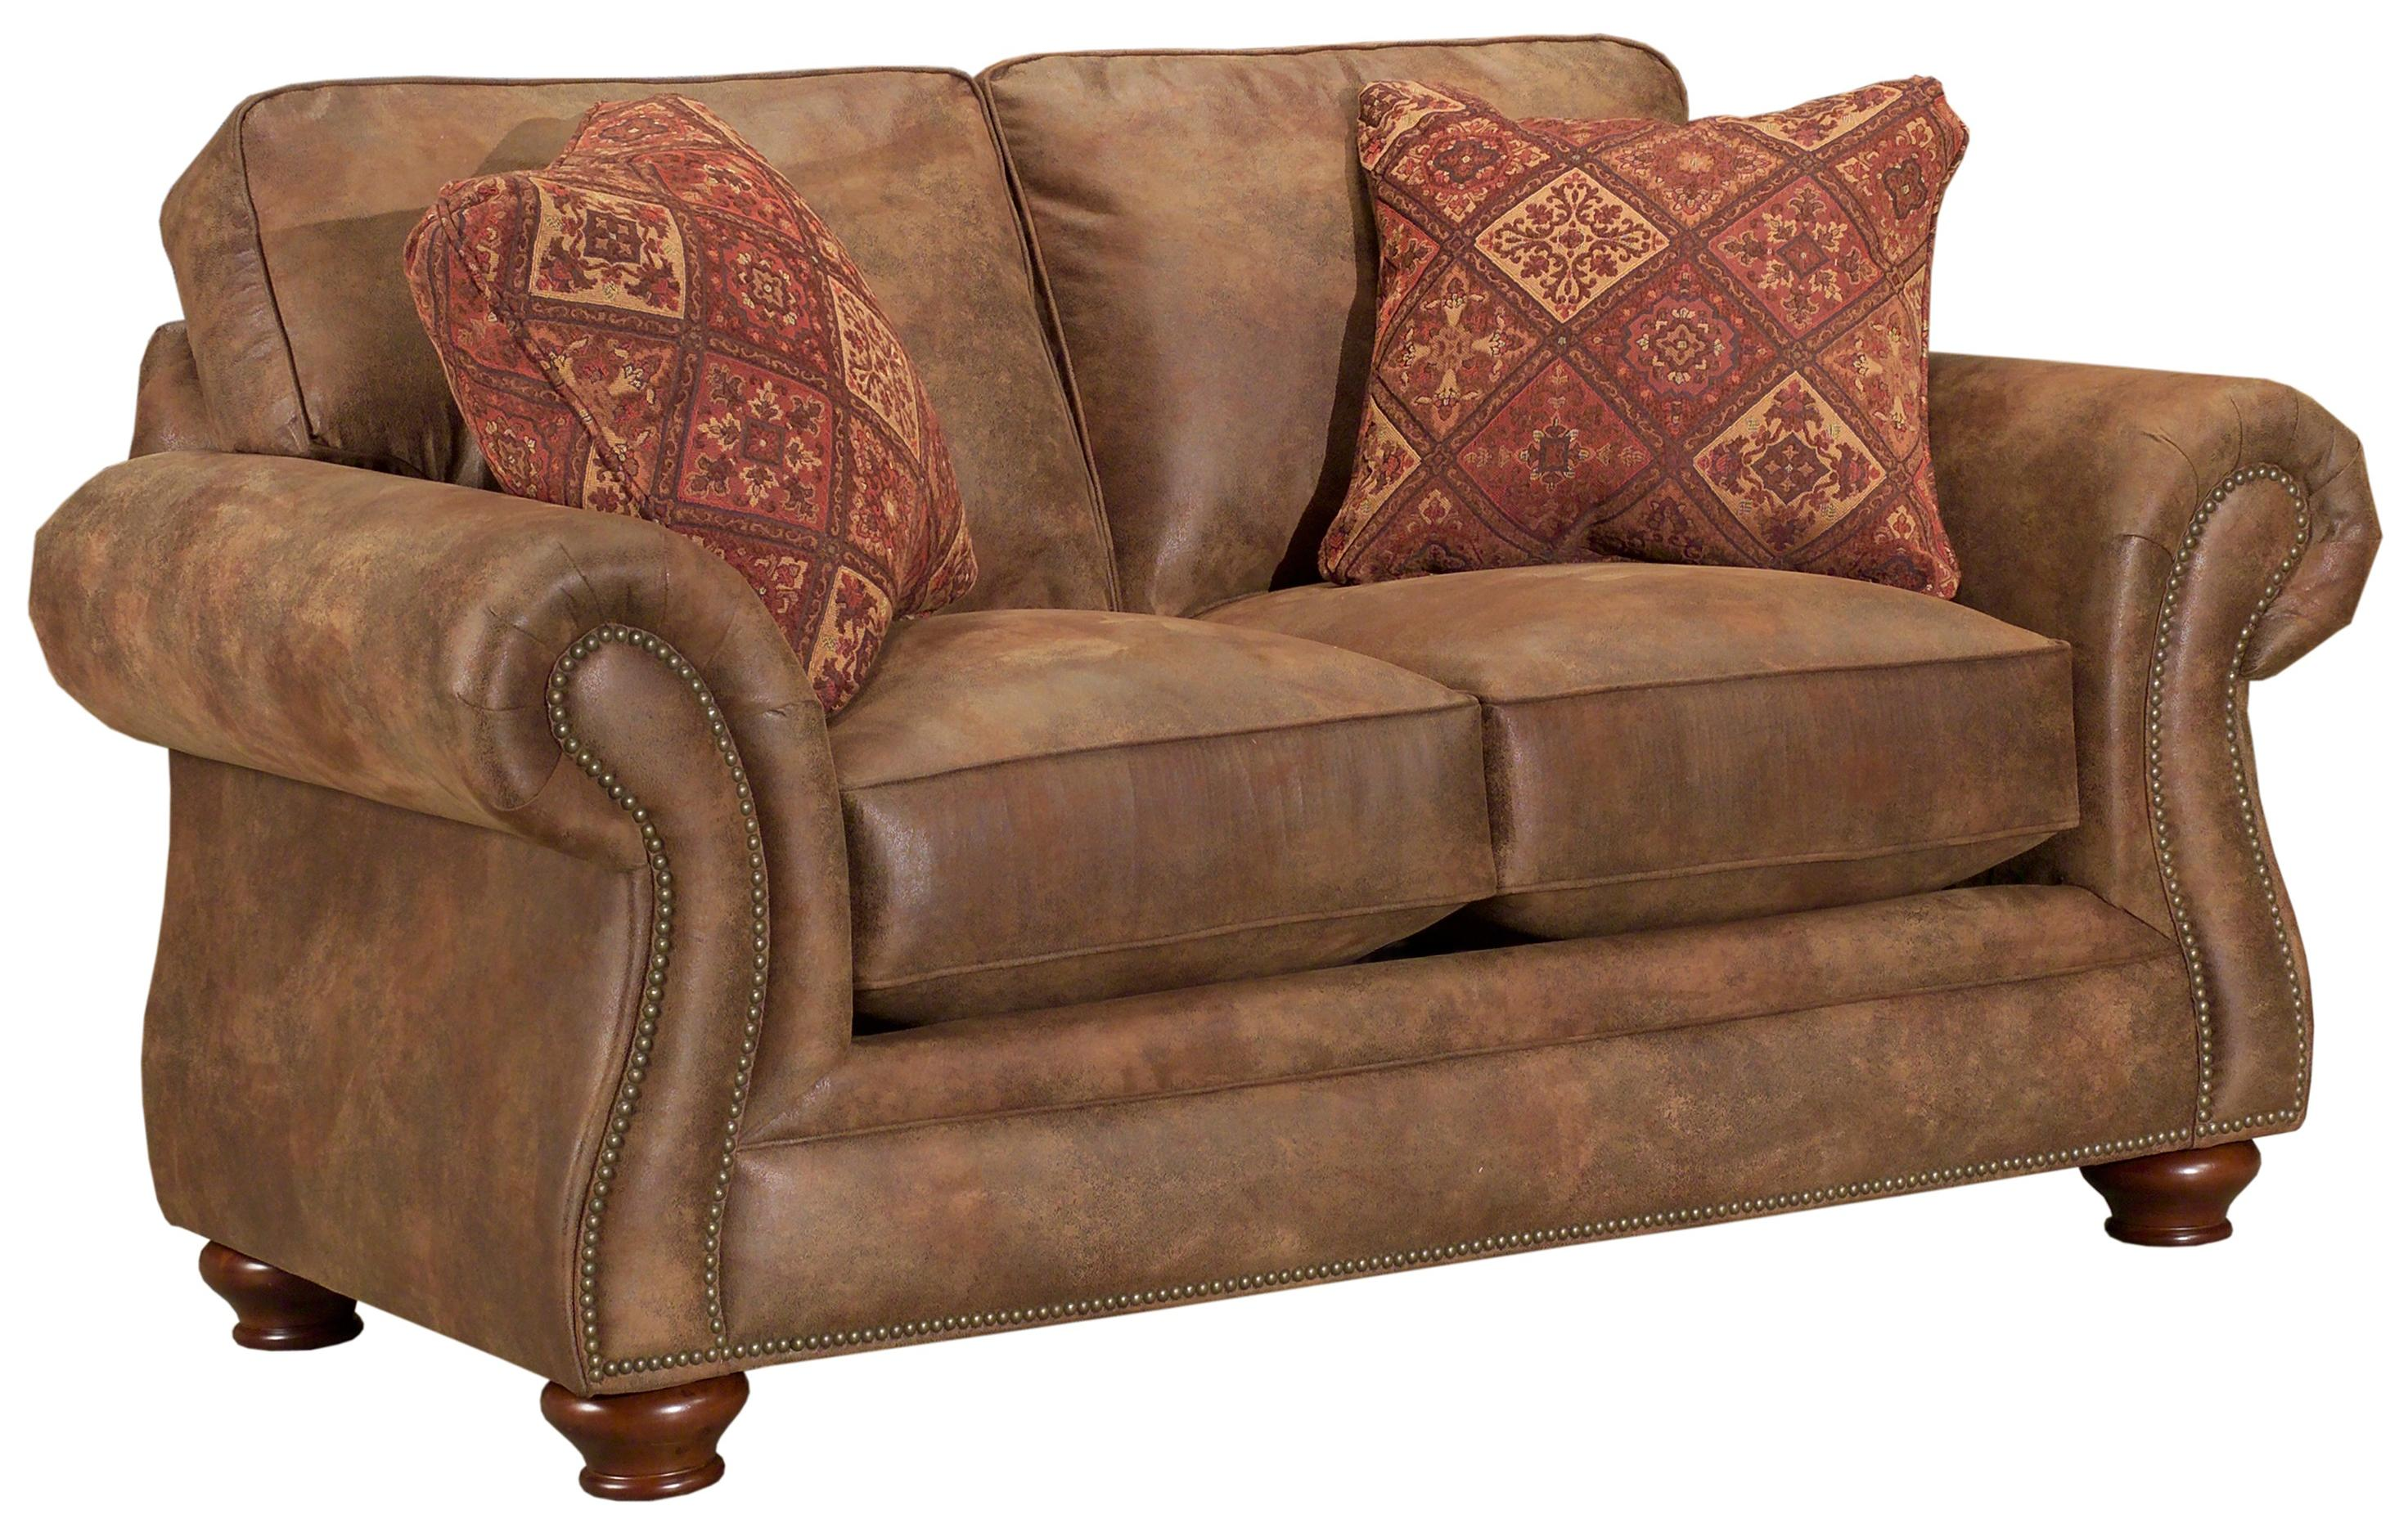 Bon Broyhill Furniture Laramie Loveseat   Item Number: 5081 1